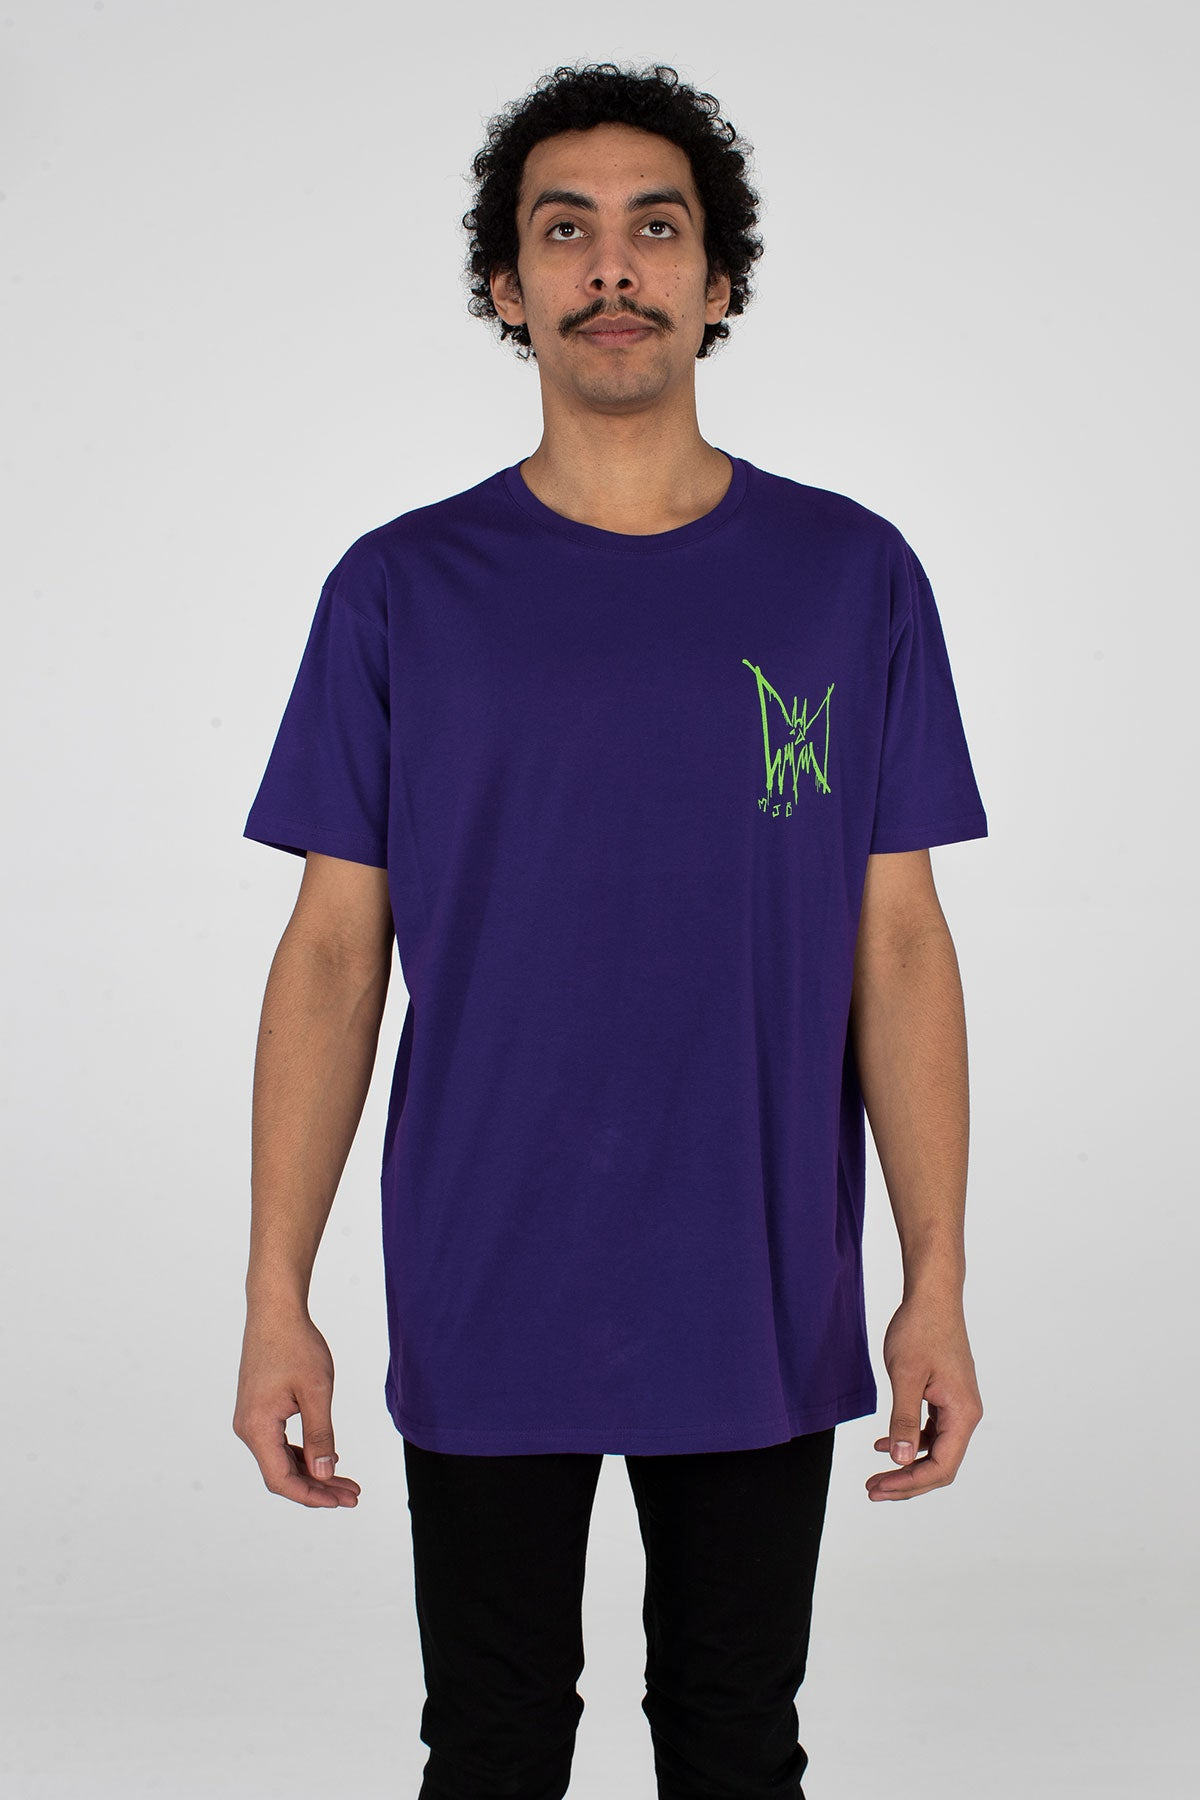 Festival T Shirt Purple Bat - TOP - MJB